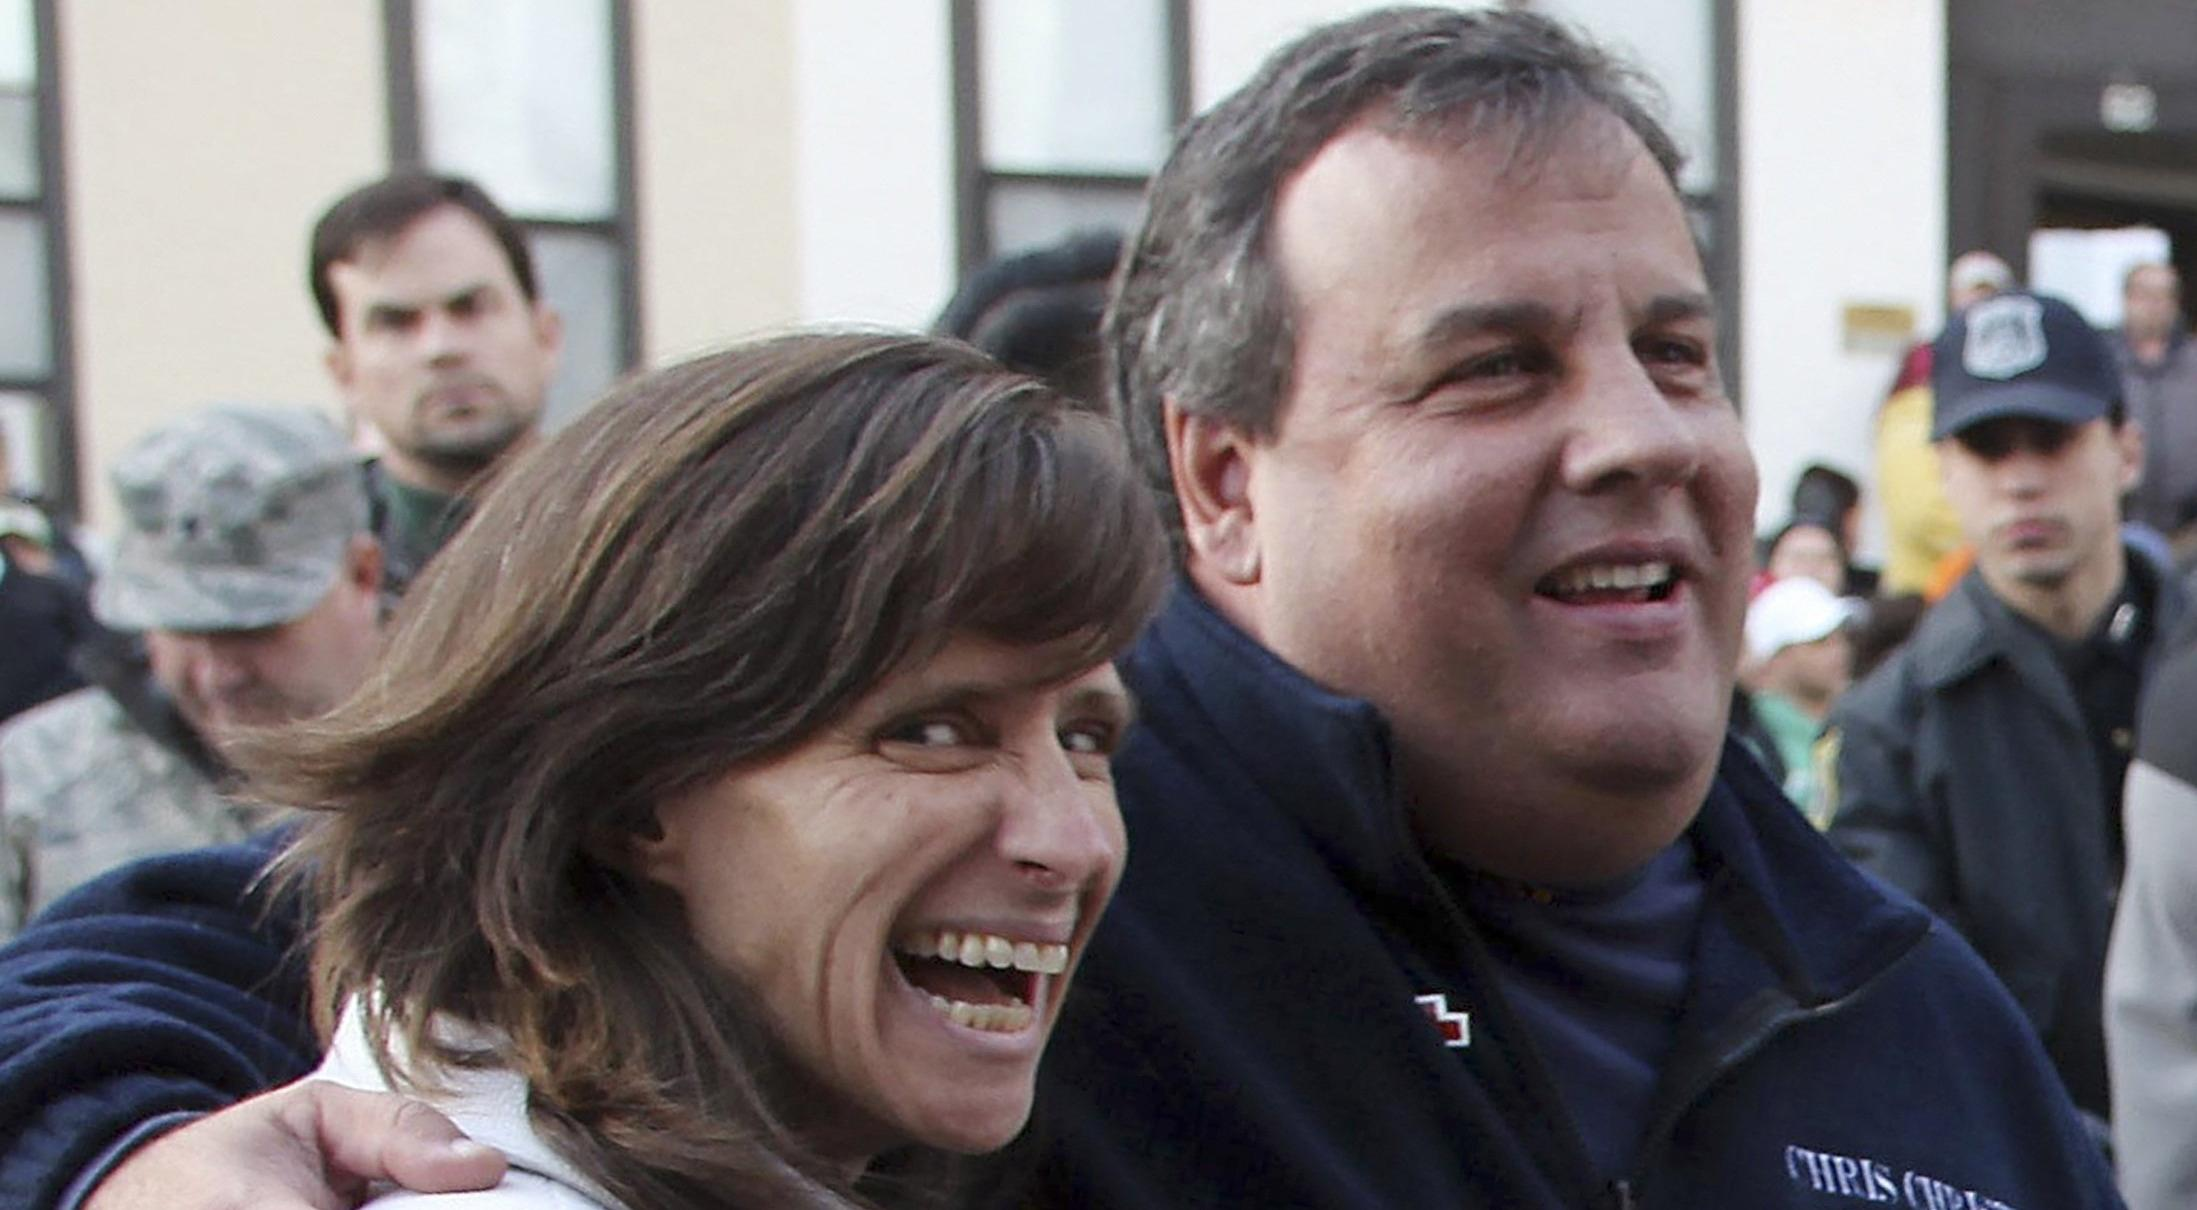 Image: Handout file photo of New Jersey Governor Christie and Hoboken Mayor Zimmer speaking with volunteers in Hoboken